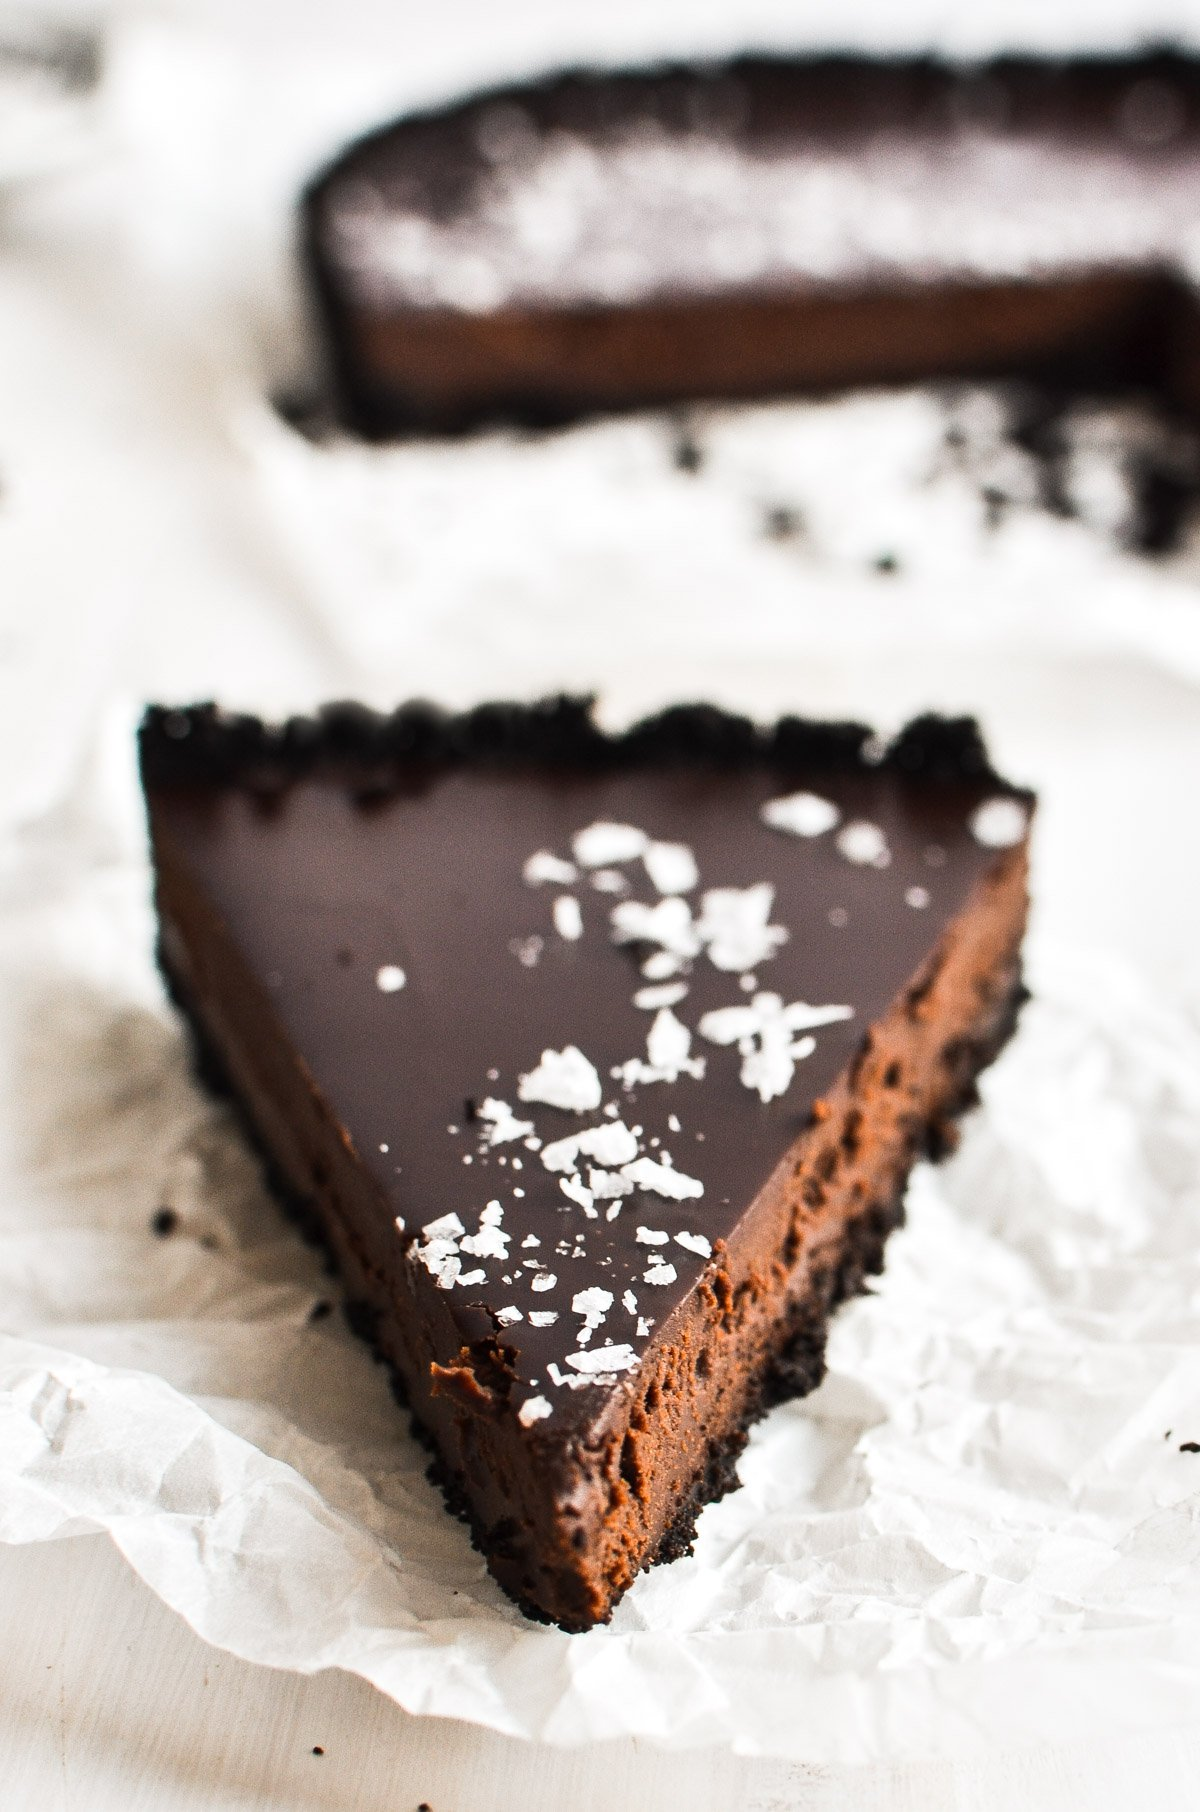 A slice of Dark Chocolate Truffle Tart.